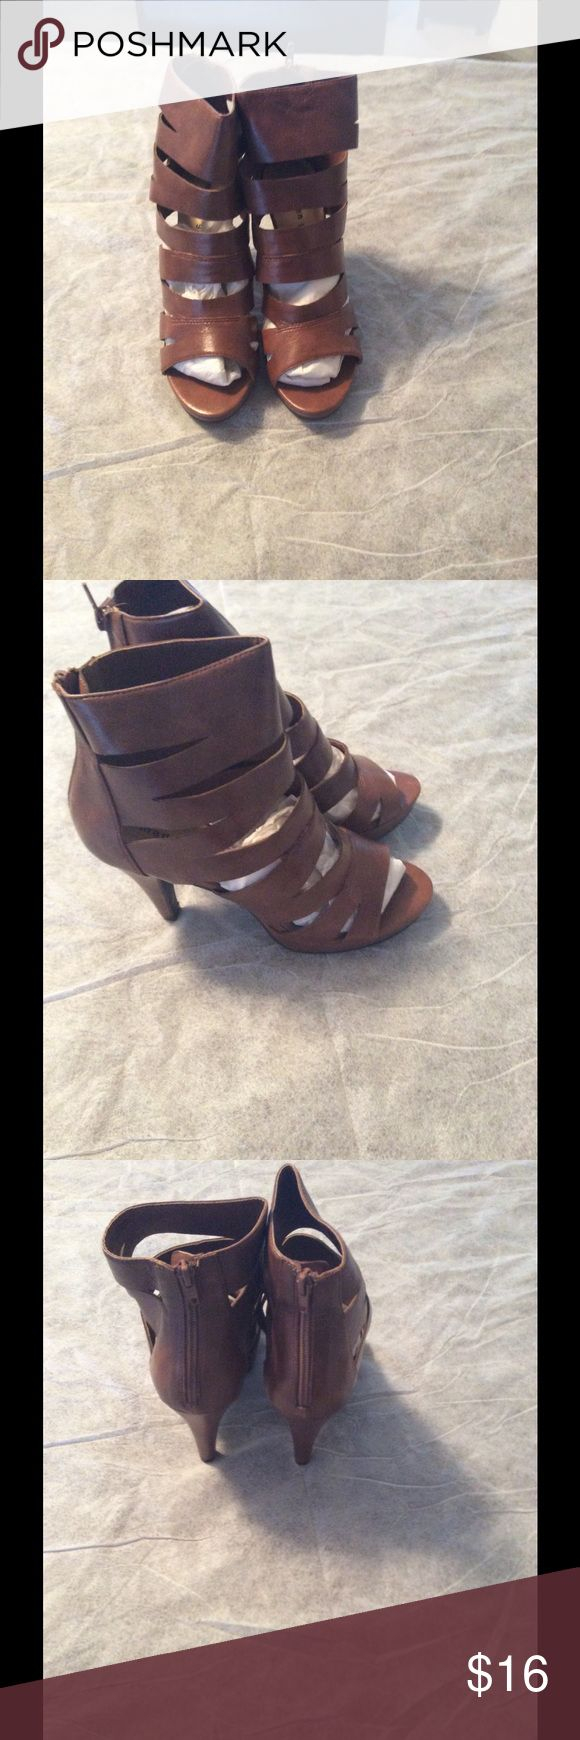 Madden girl cage heels Cage heel sandals in reddish brown. Excellent condition. never worn Madden Girl Shoes Ankle Boots & Booties